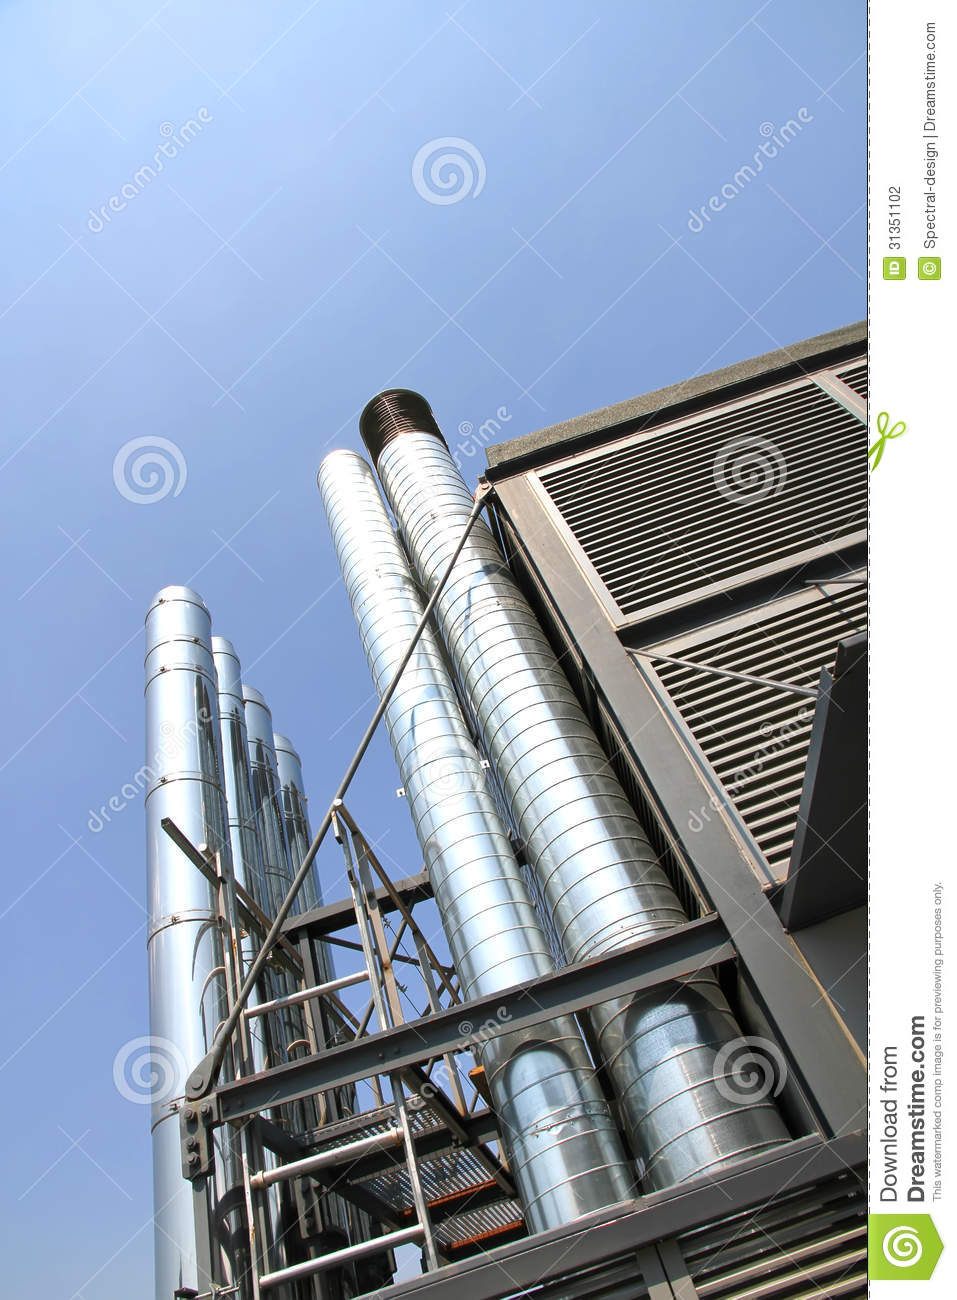 Industrial Air Pipes : Industrial air conditioning stock photography image